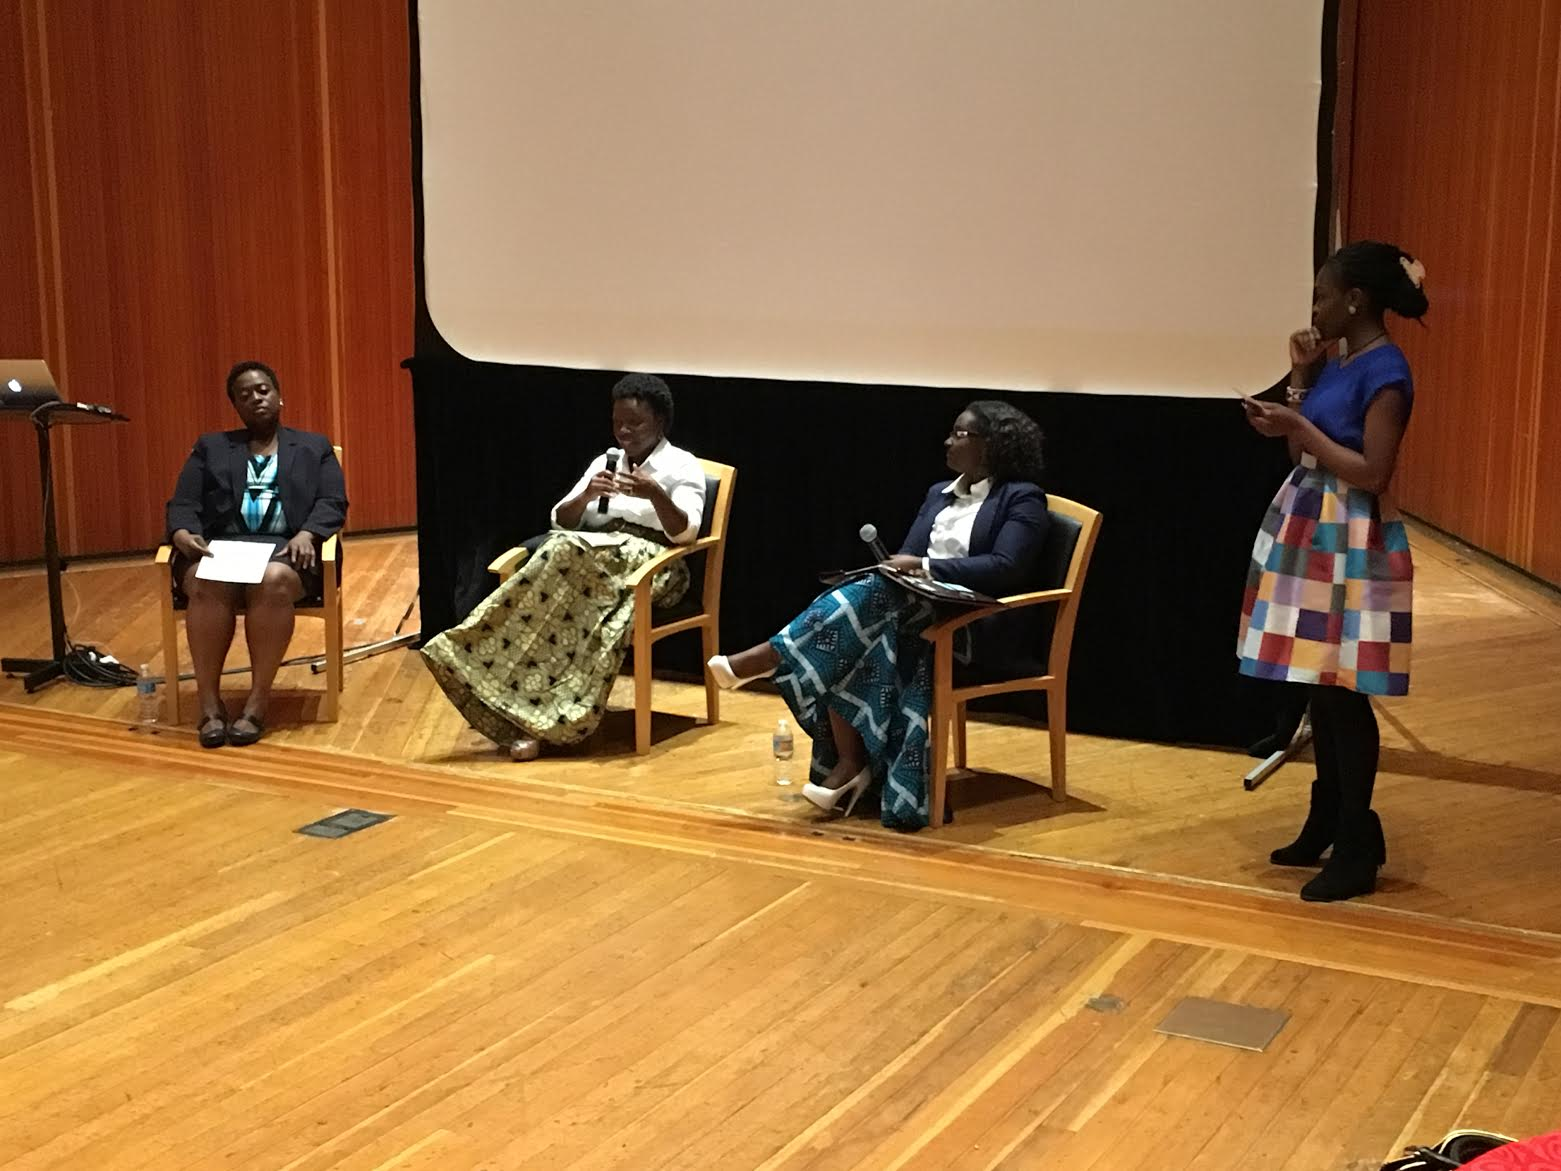 The three immigrant women all came from Liberia. From left to right: Minikon, Lee, Jallah, Ogunsola.